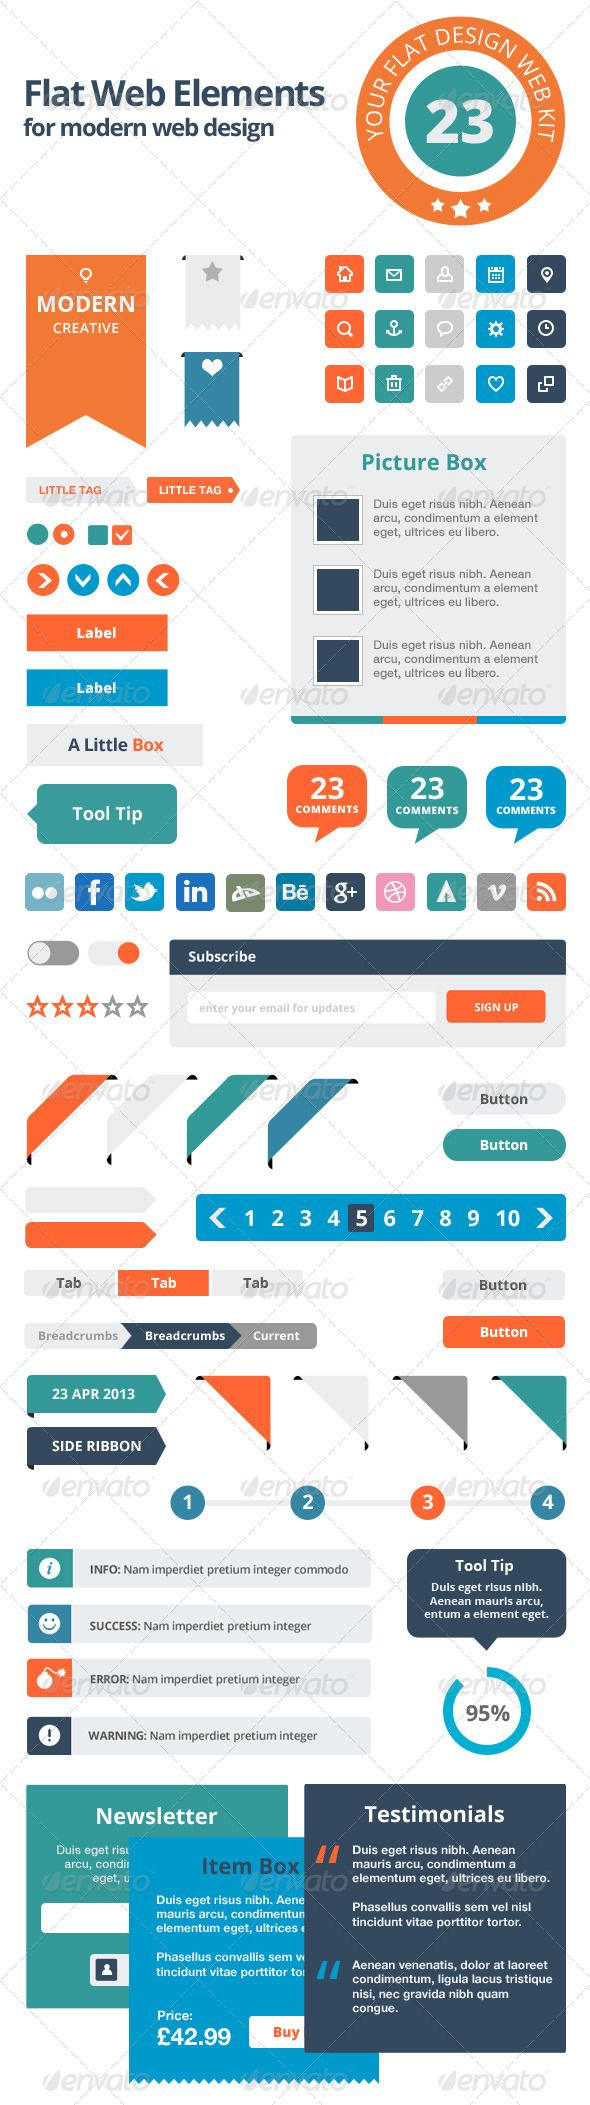 107 best ui + ux images on Pinterest | User interface, User ...